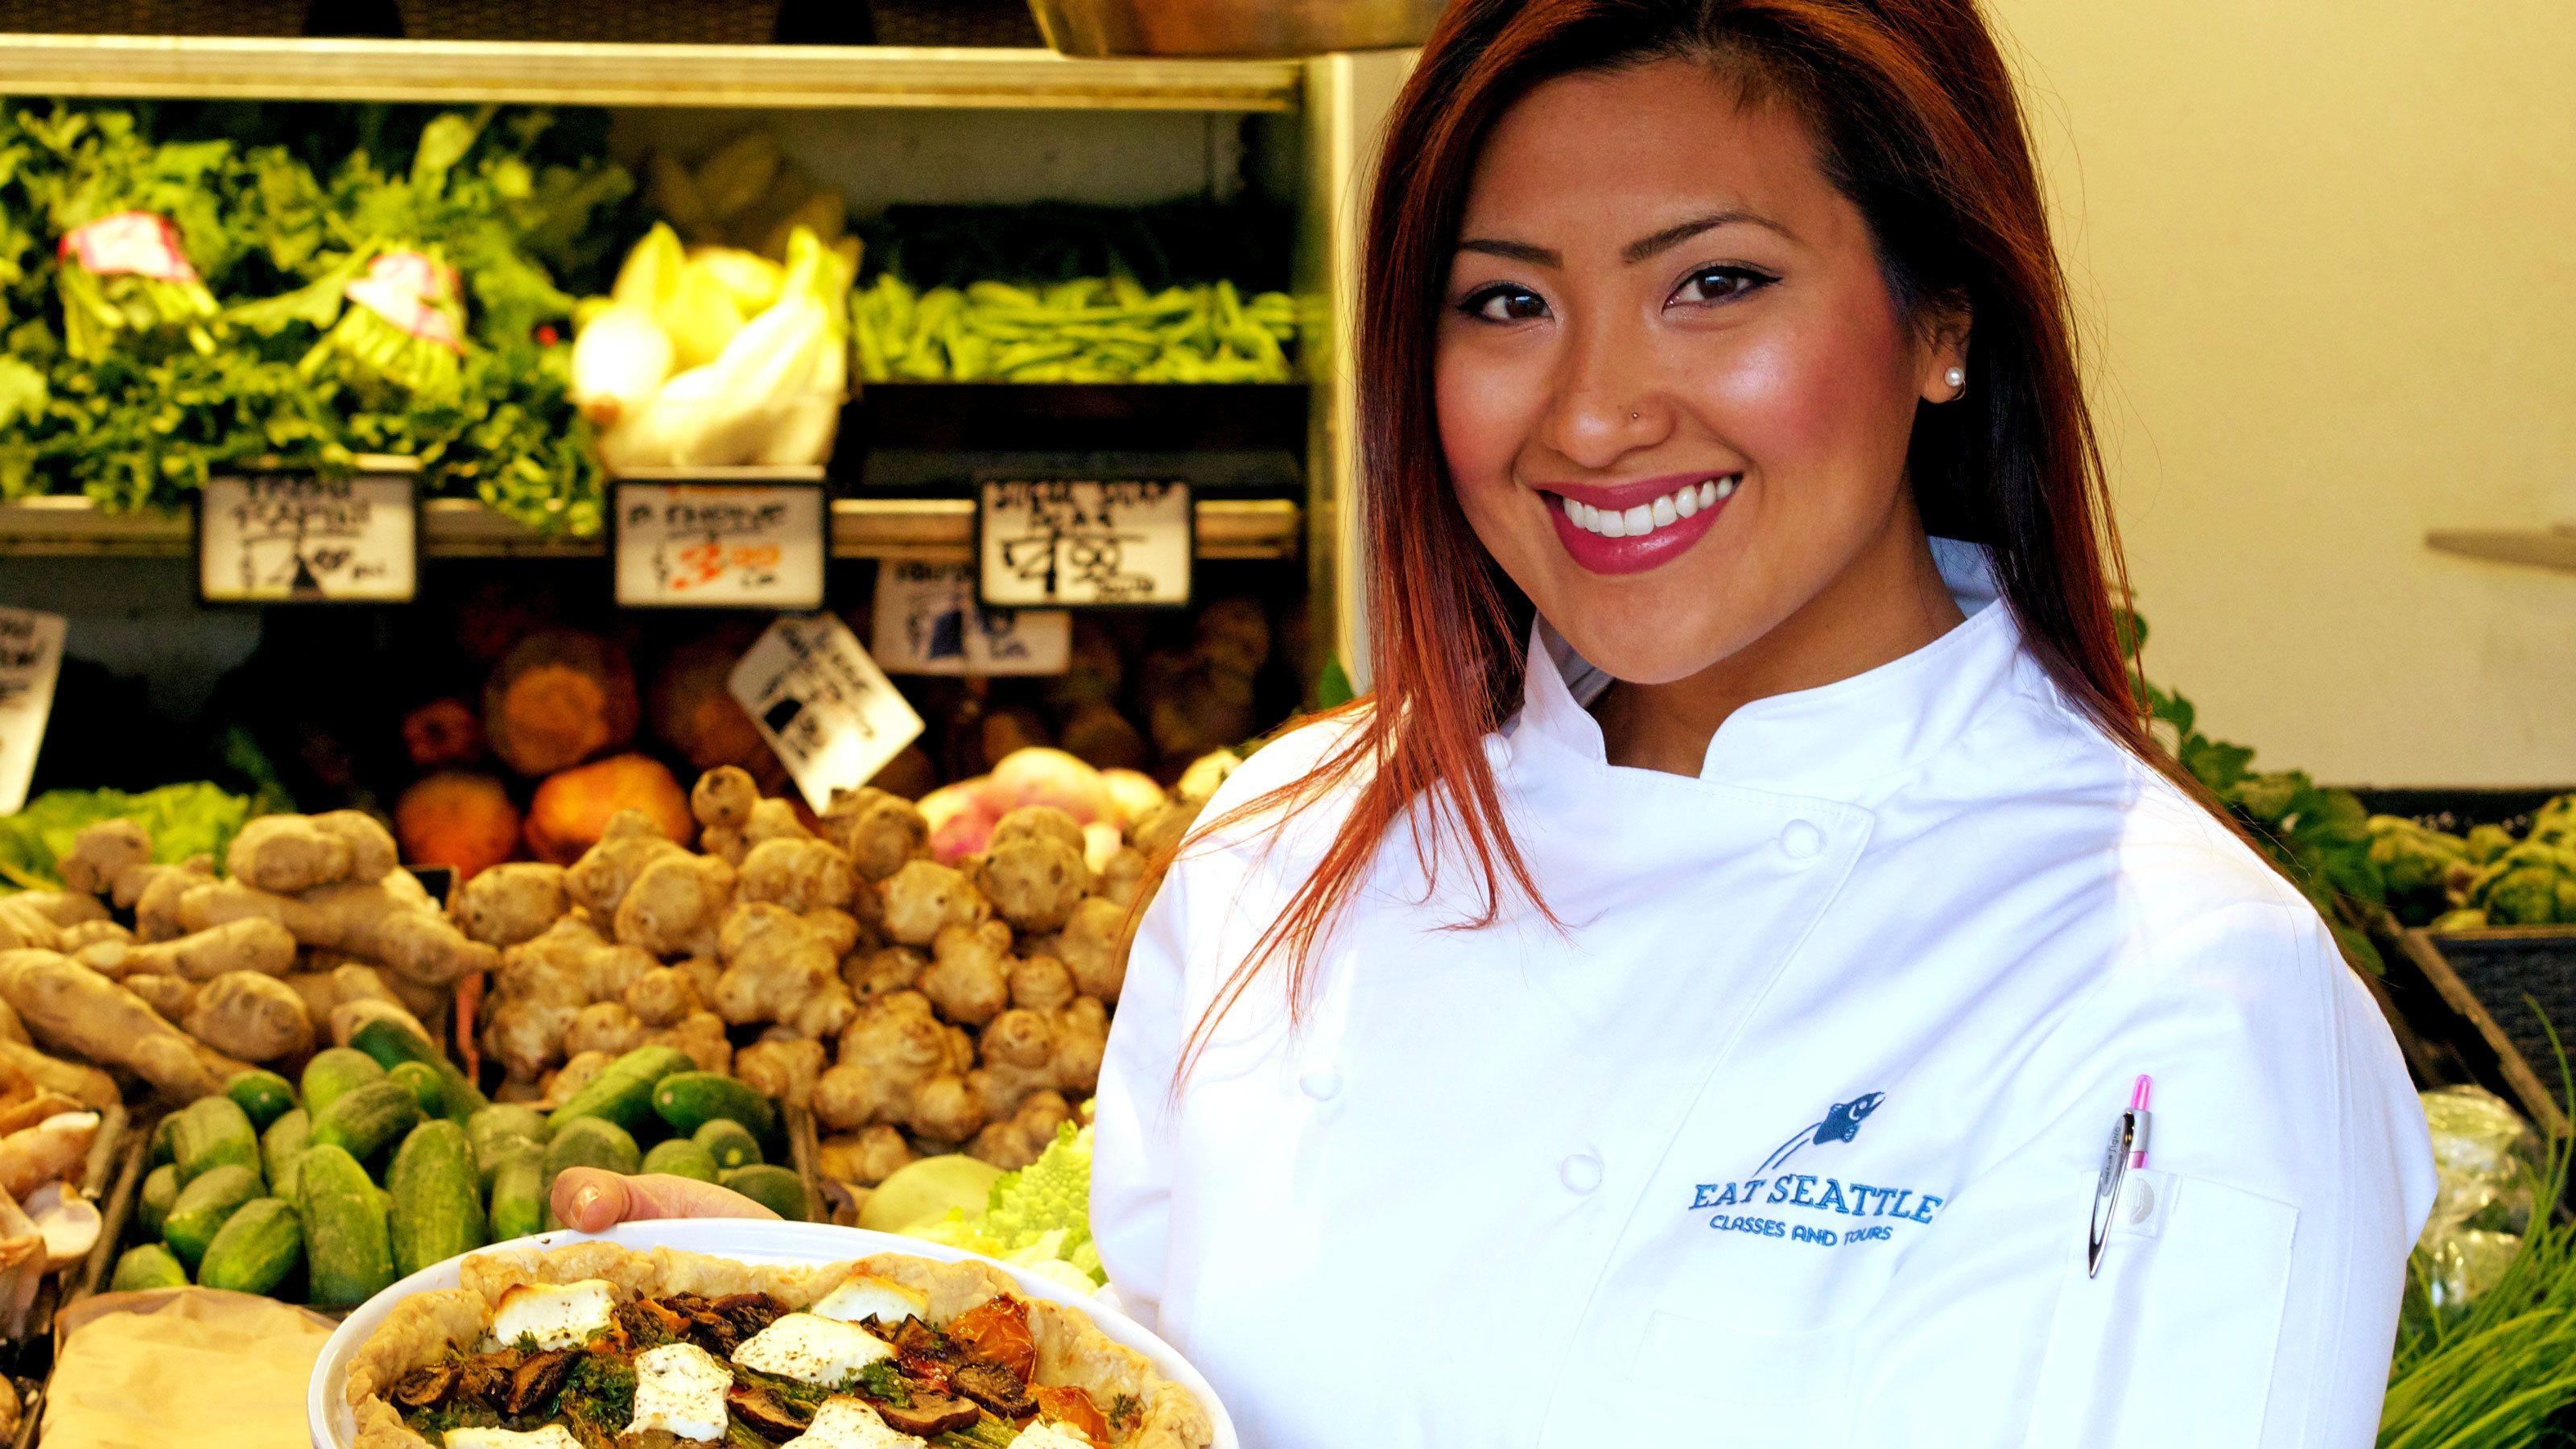 Chef-Guided Food Tour of Pike Place Market in Seattle